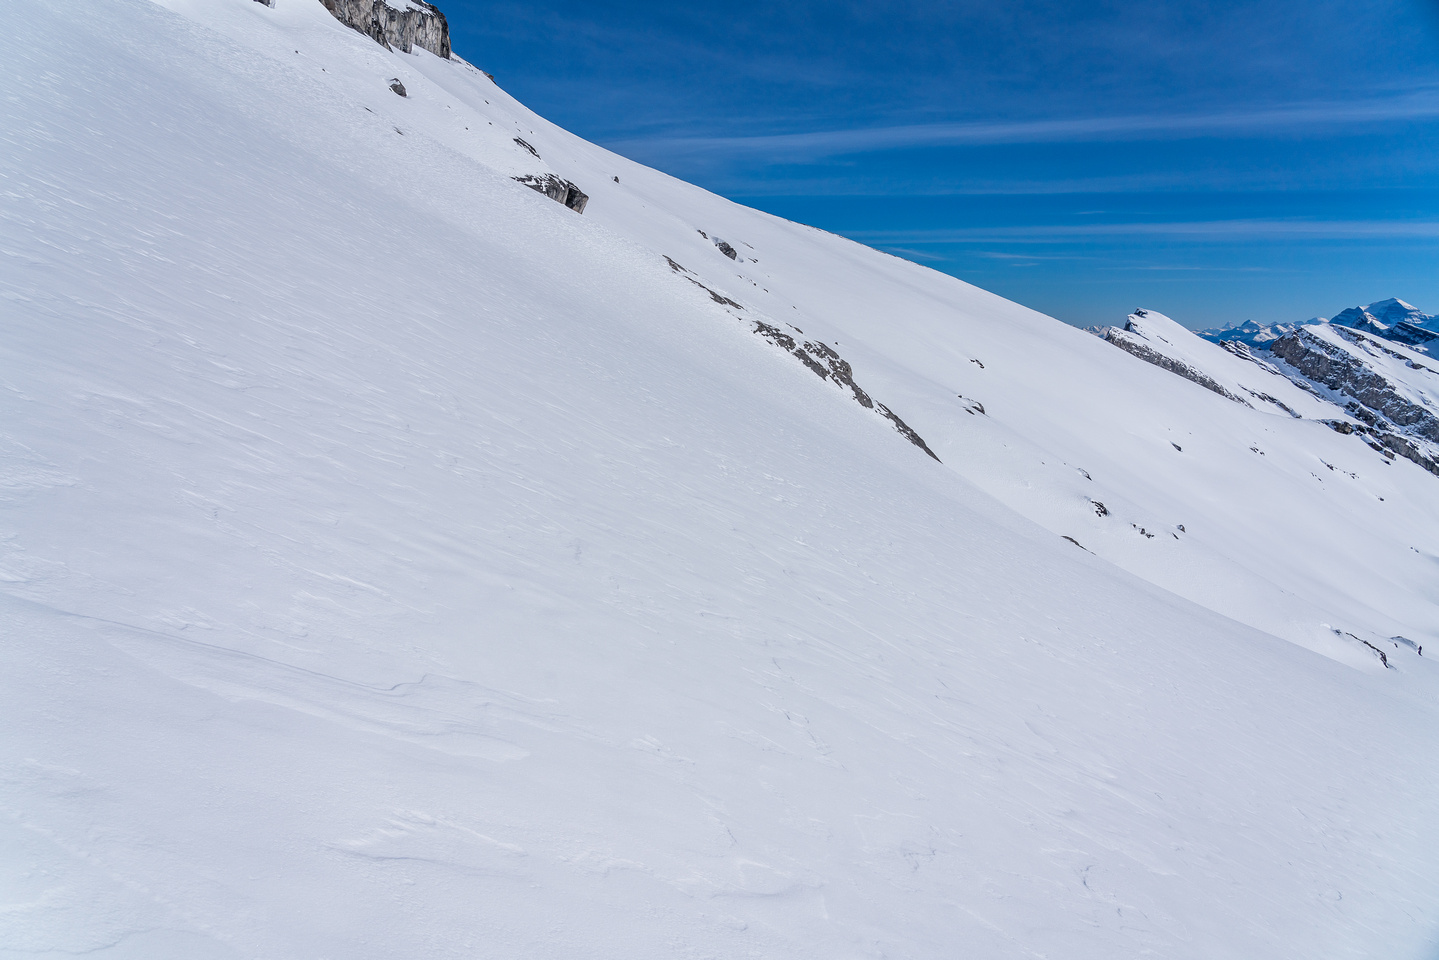 This is the slope angle on the summit block - not too steep but can still slide.